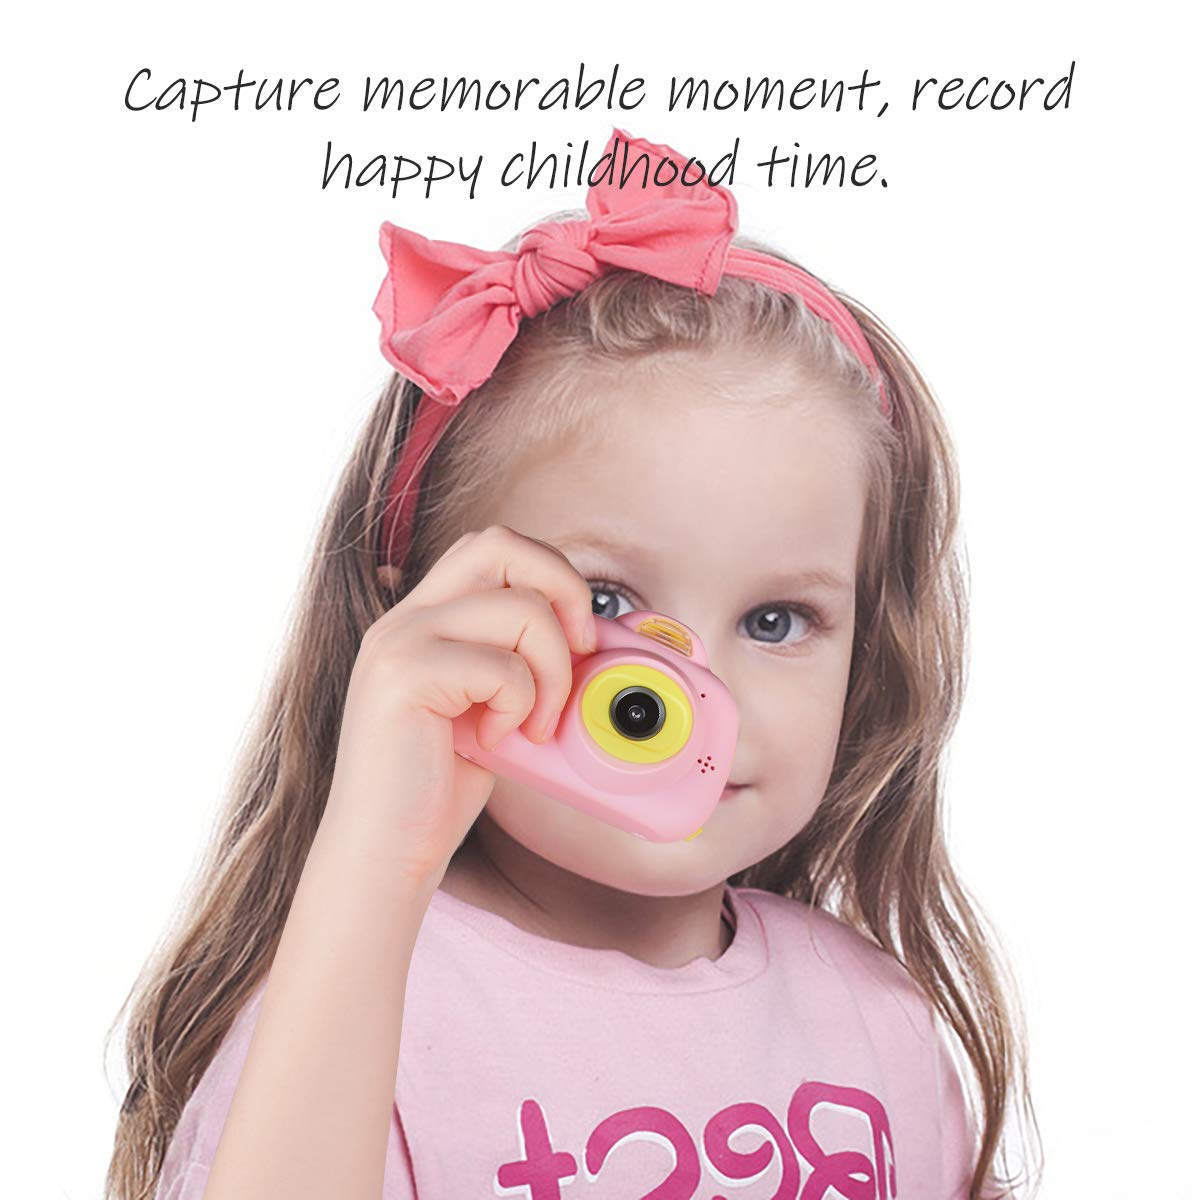 Funkprofi Kids Camera 1080P 8MP Front & Rear Camera Clear Digital Recorder Camcorder for Kids, Selfie Function, Funny Frames, Face Recognition, Support 32GB Memory Card, Best Gift for Boys and Girls by Funkprofi (Image #3)